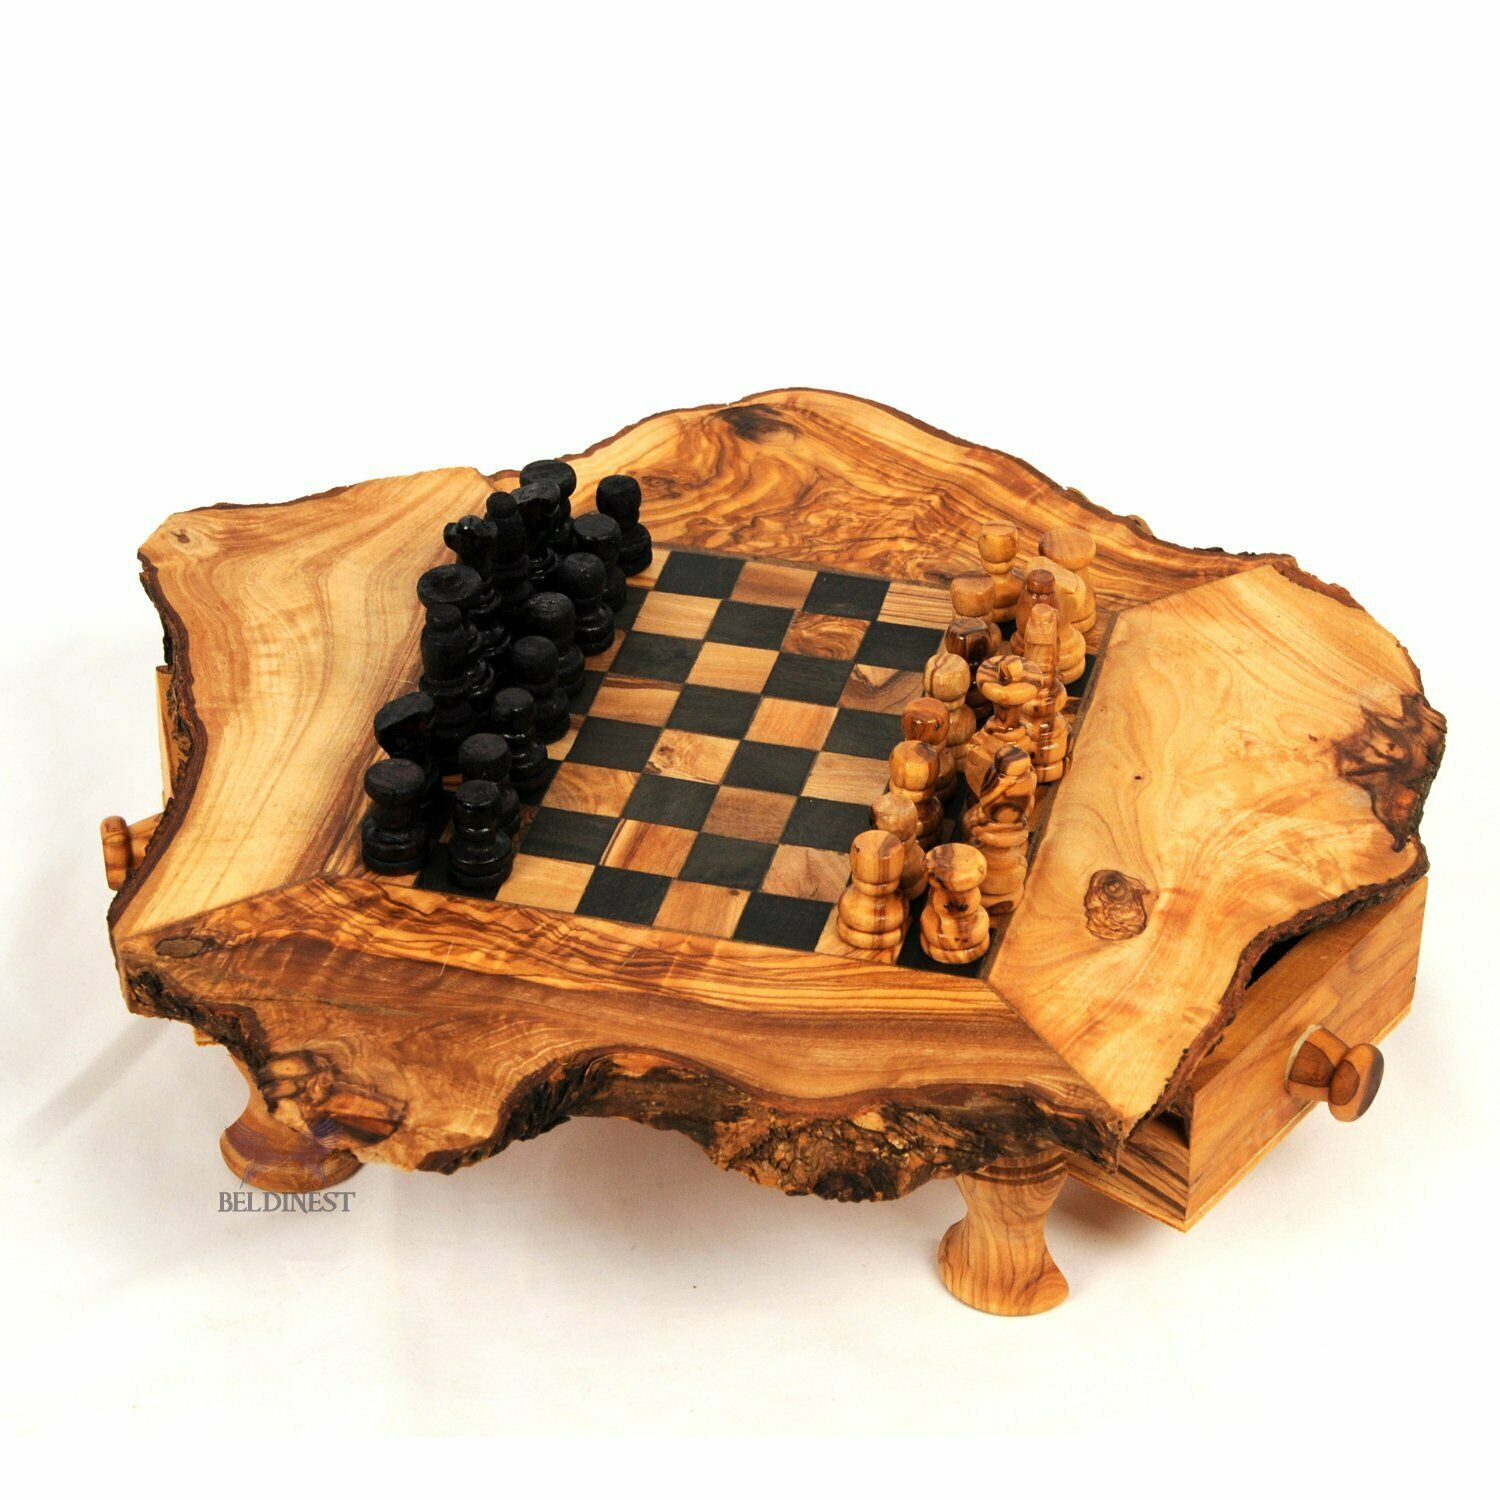 Handmade Rustic Olive Wood Small Chess Board S6x6 Chess Game